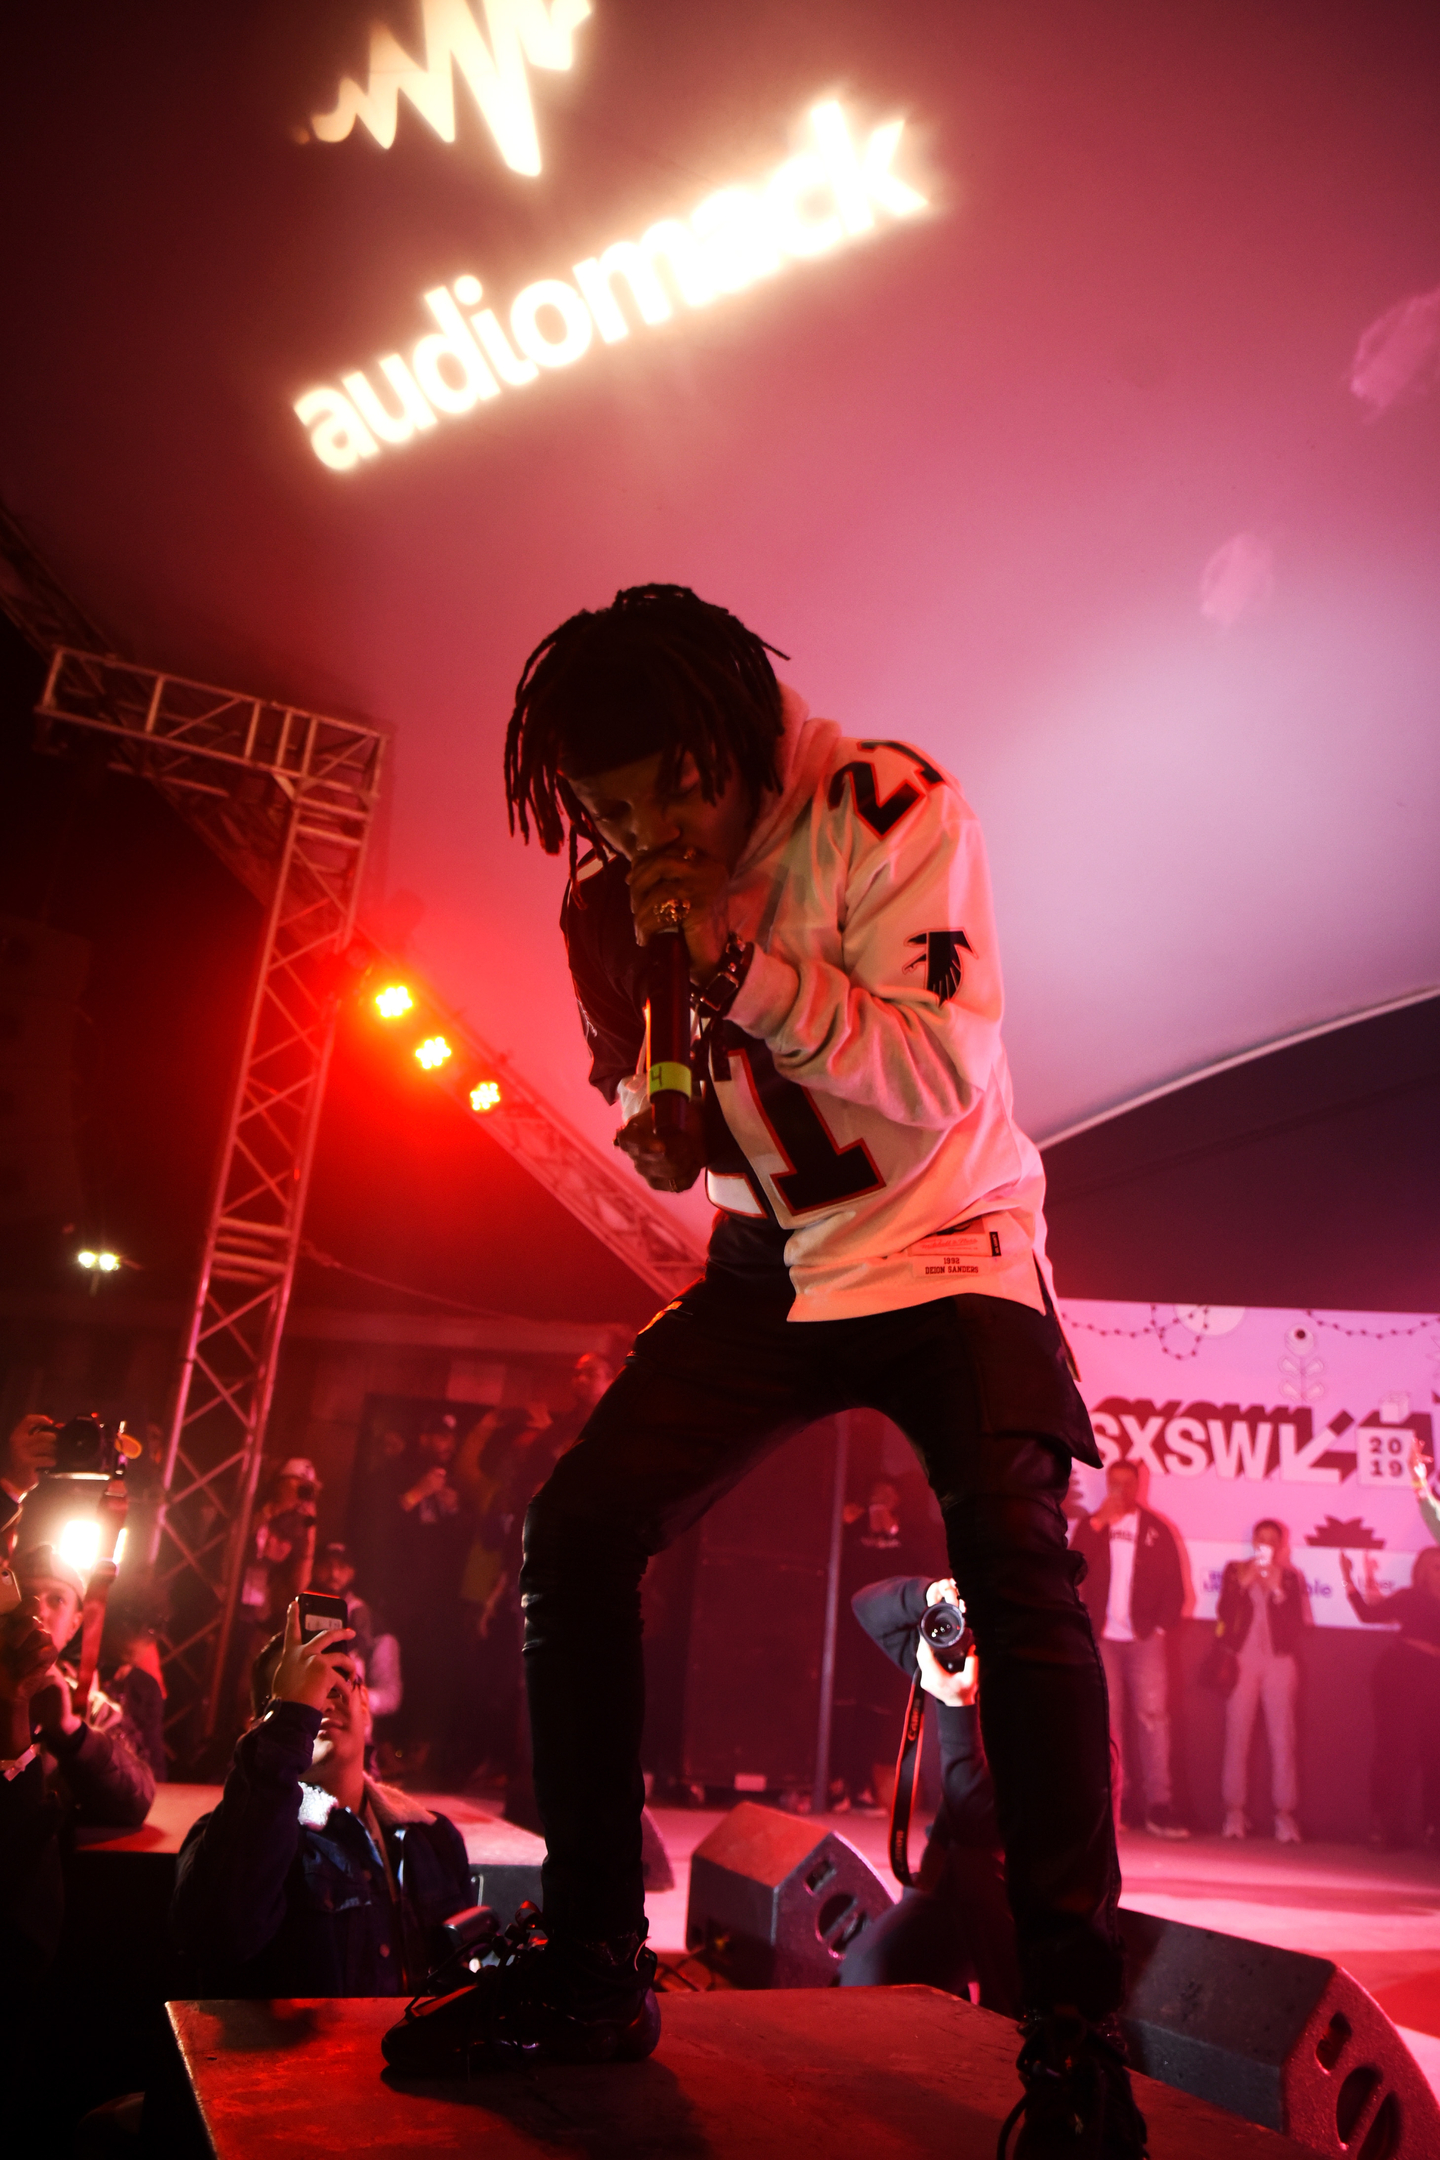 J.I.D peforms onstage at DNES Marketing showcase at Stubb's.